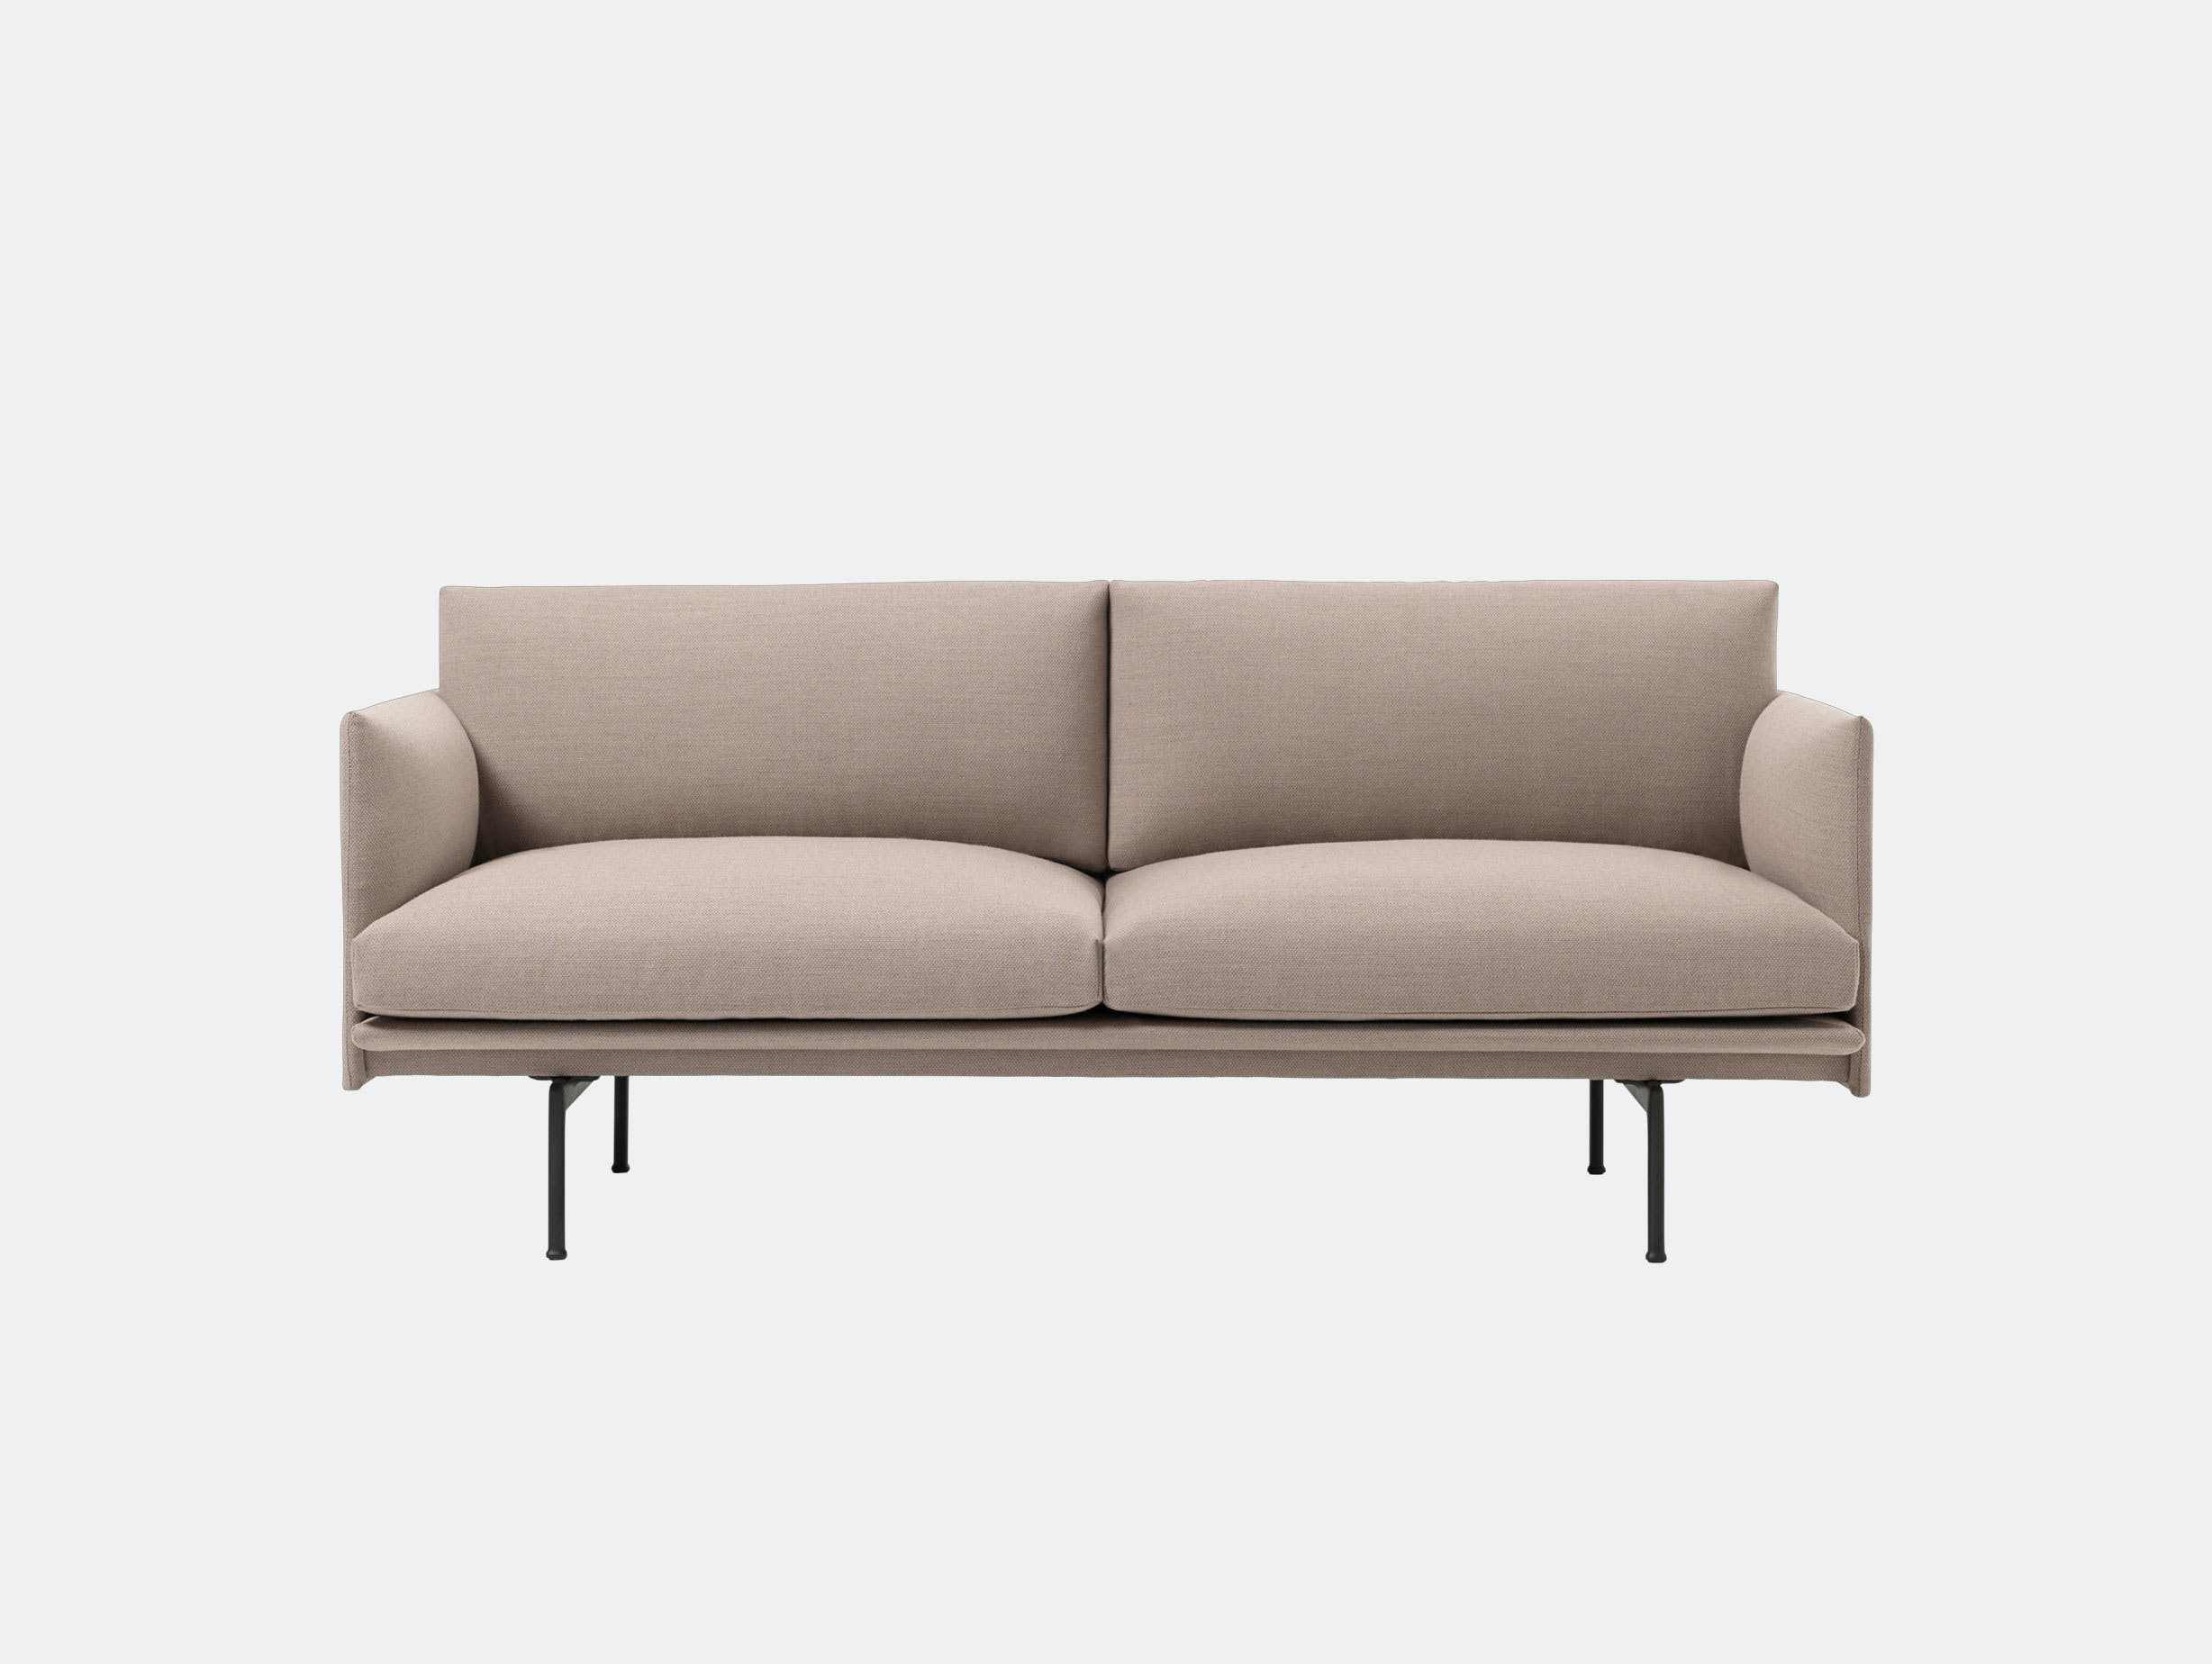 Muuto Outline 2 seater fiord 551 Anderssen Voll